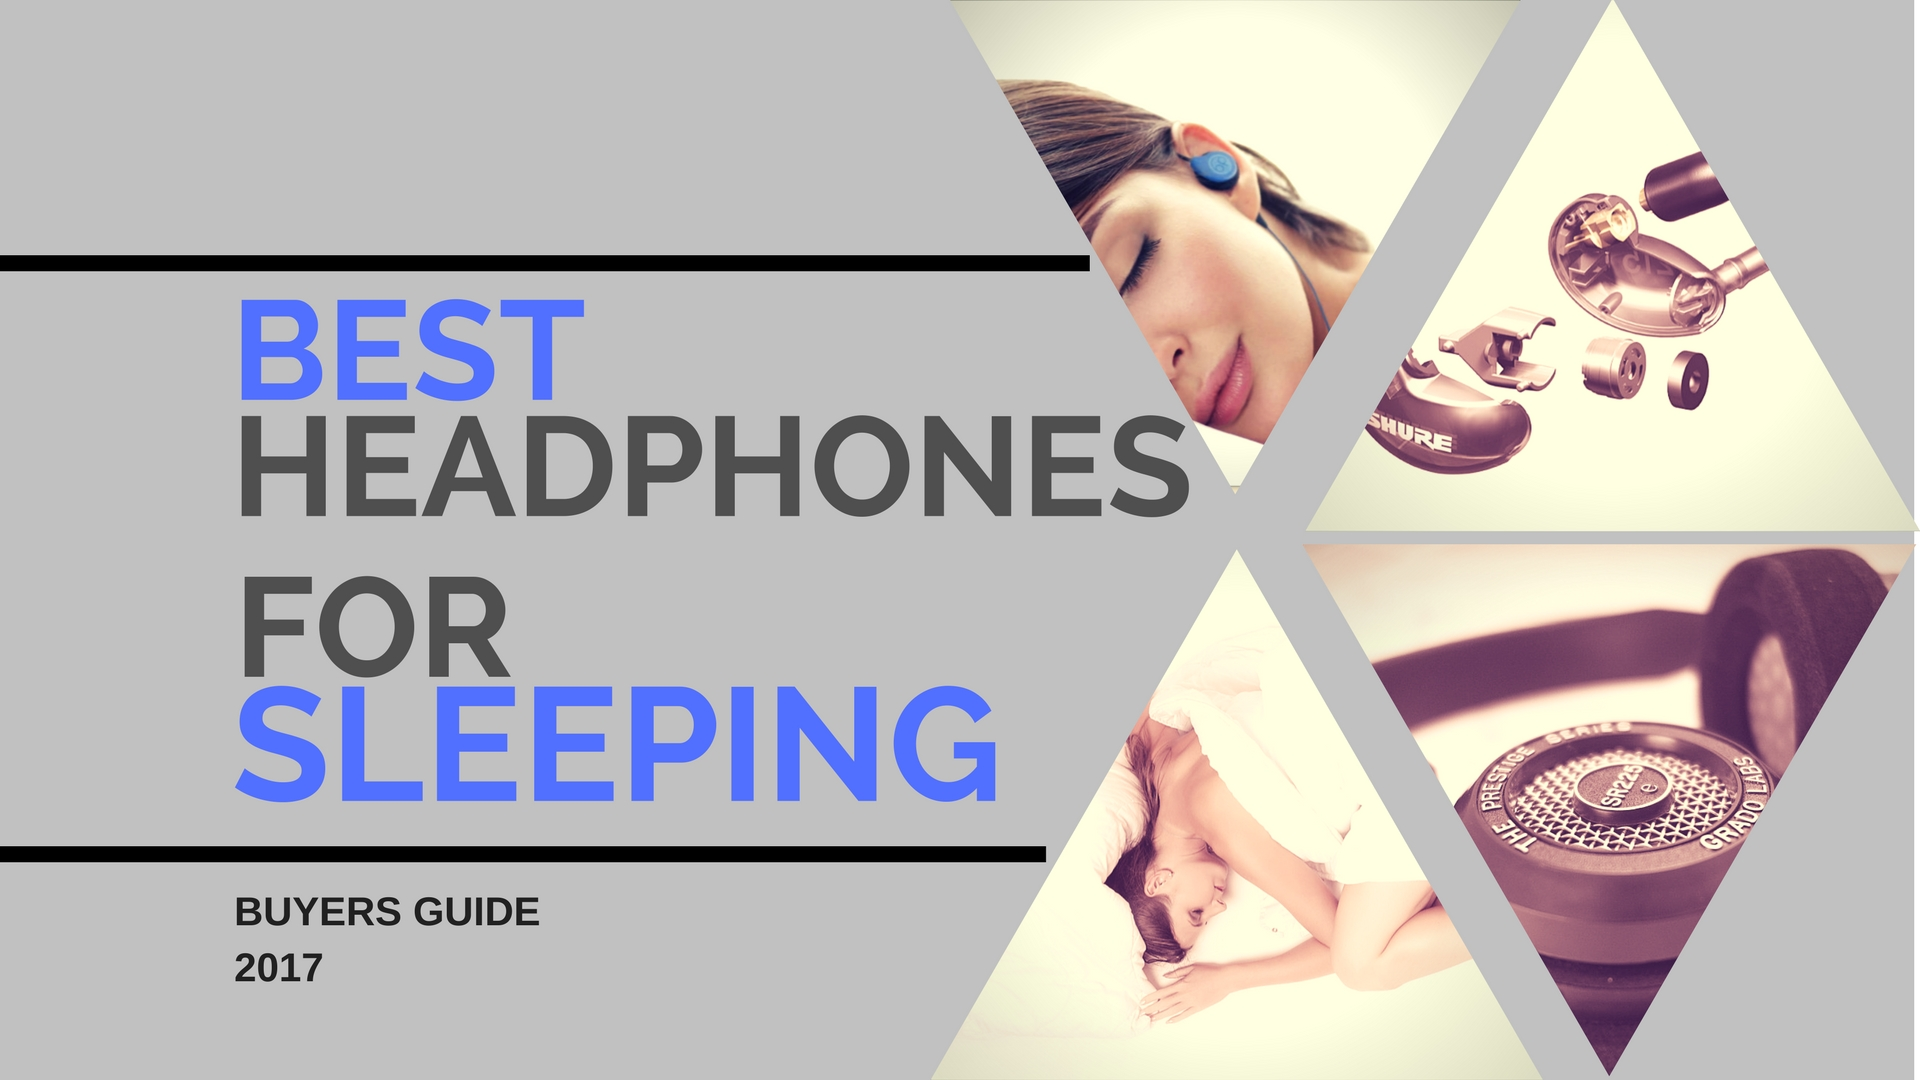 Best headphones for sleeping buyers guide 2017.